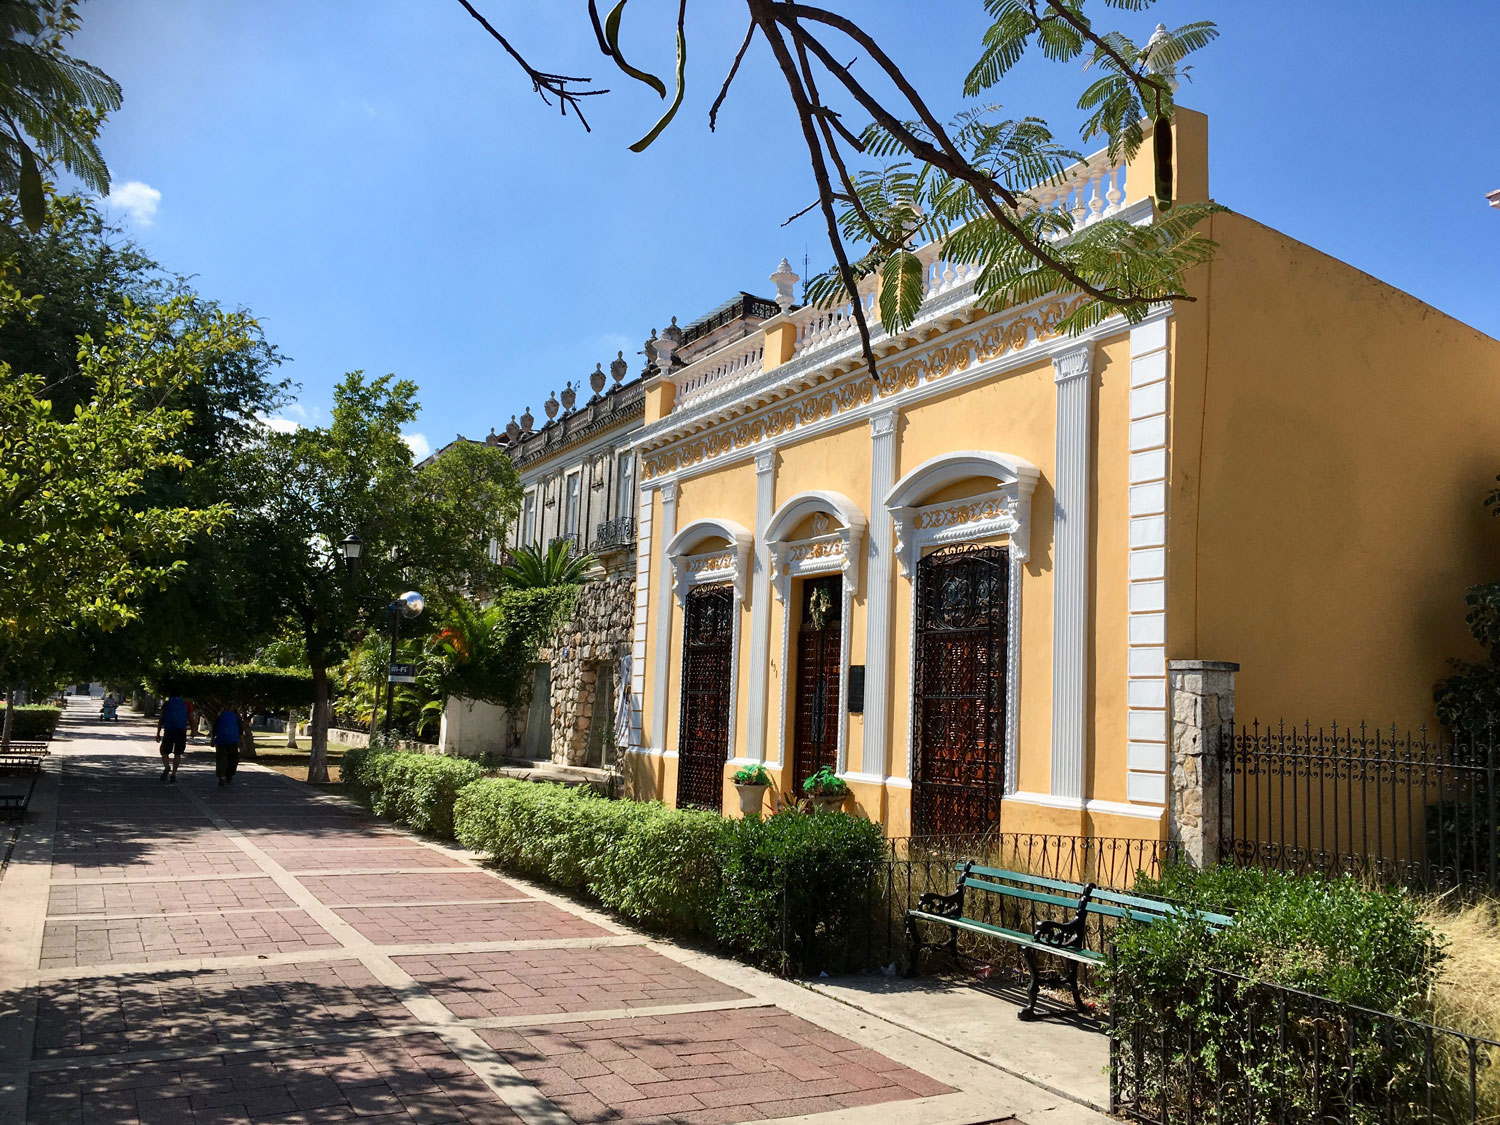 Colonial houses on the avenue Paseo de Montejo.